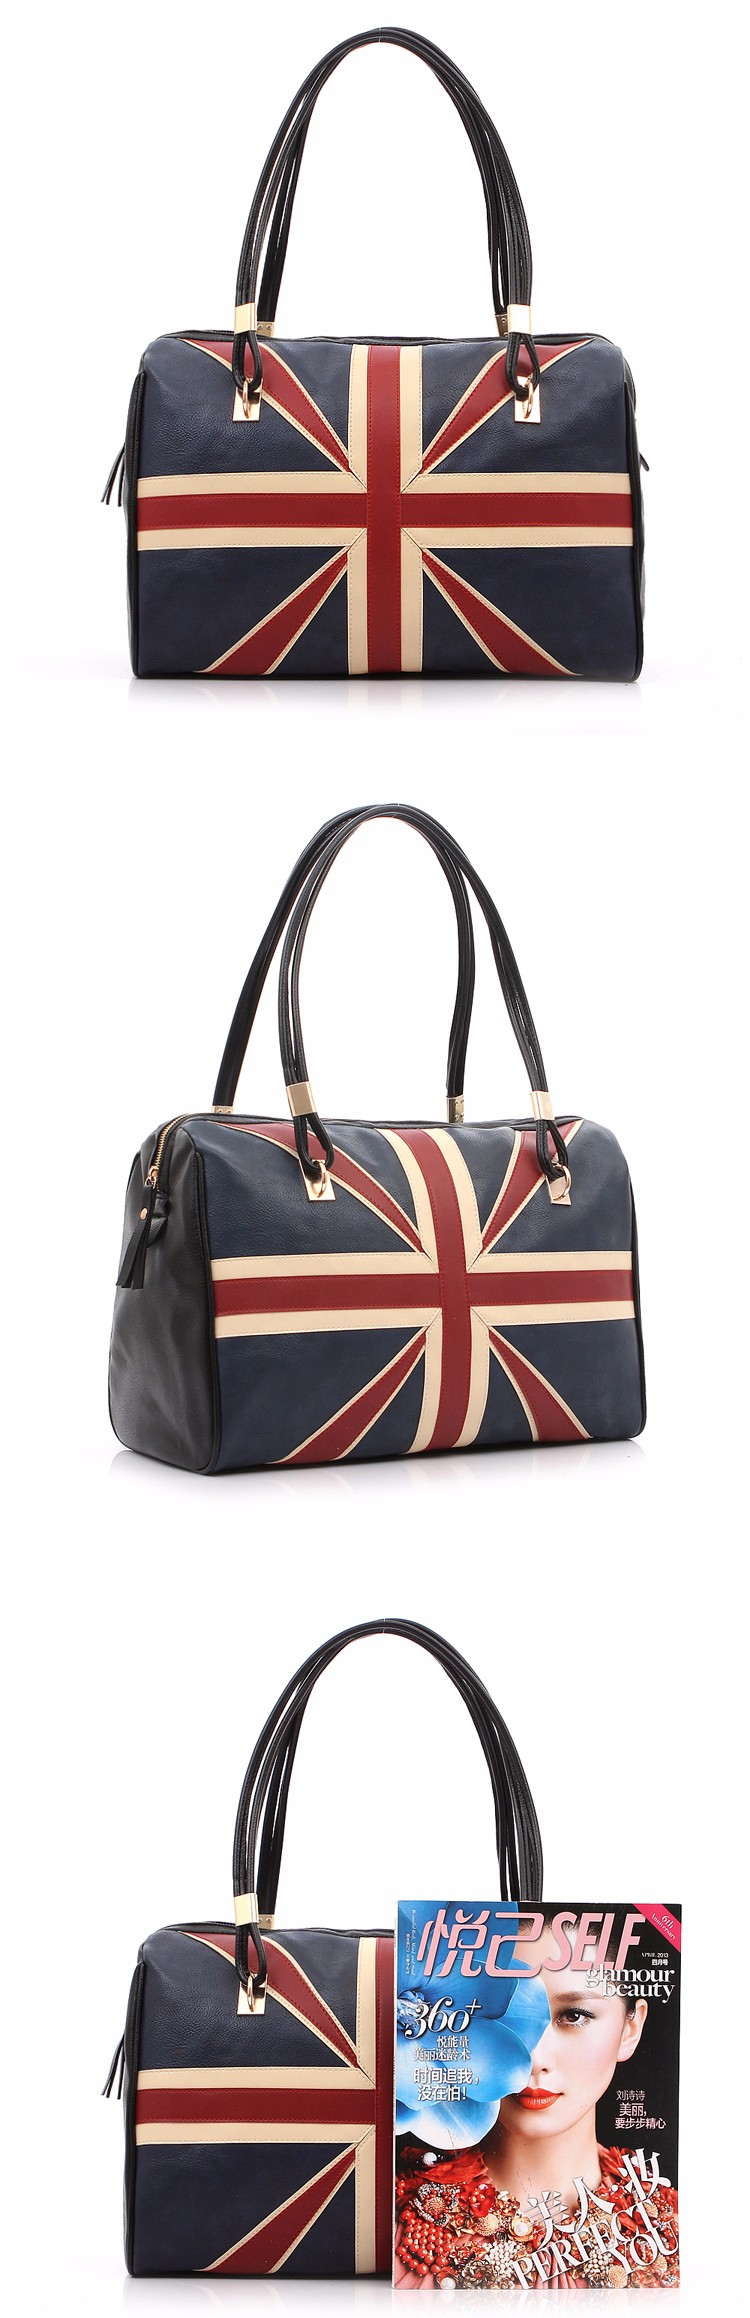 duffle bag women 1